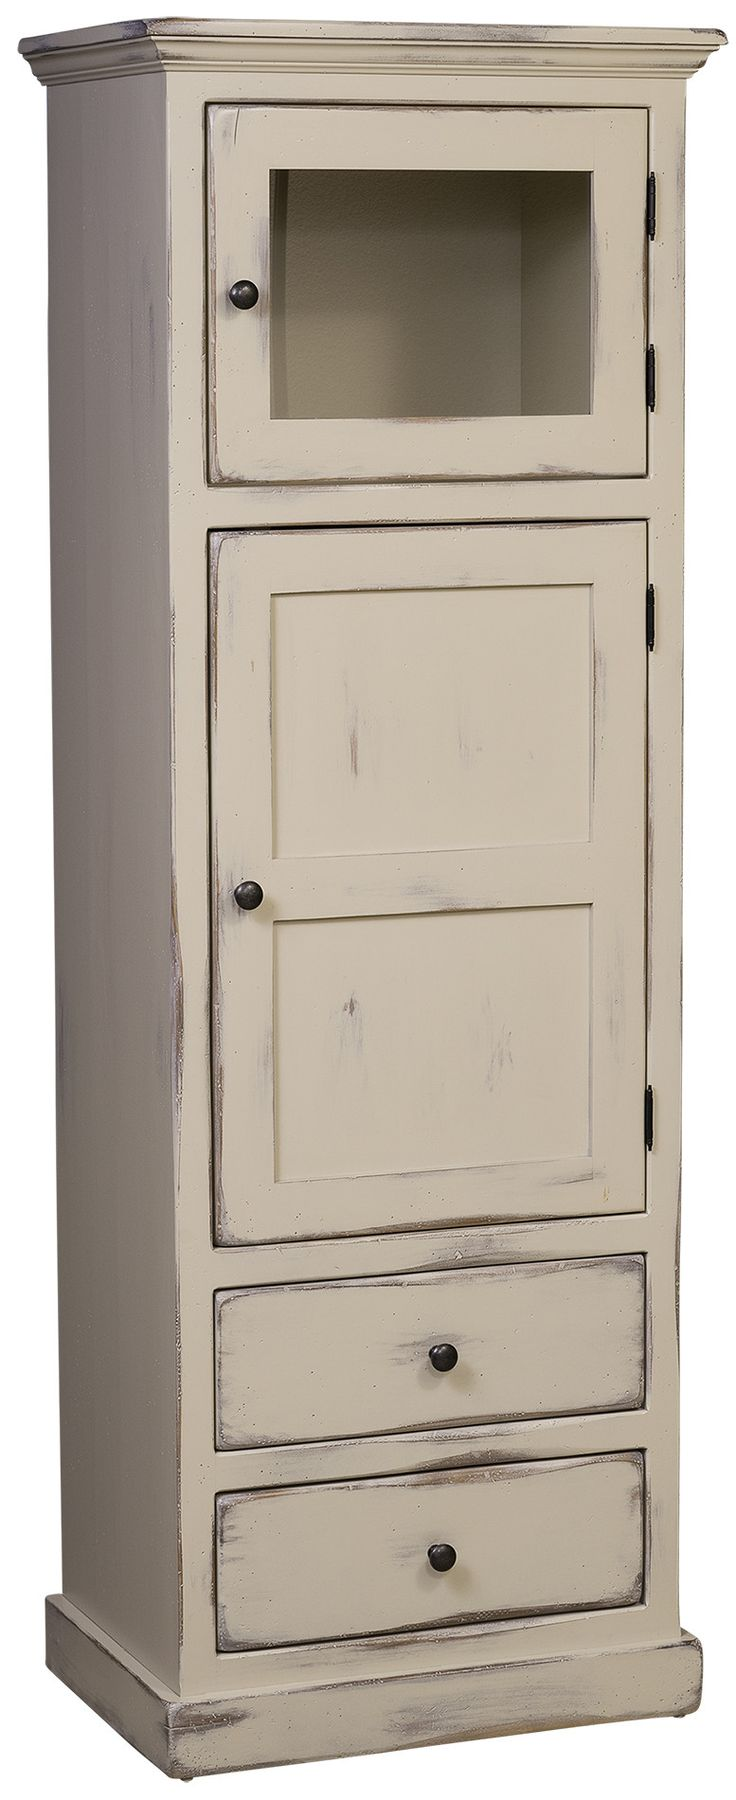 best 20 linen storage cabinet ideas on pinterest bathroom linen cabinet linen cabinet is handmade by the amish your piece will be built with premium grade eastern white pine wood you will see some deformities and